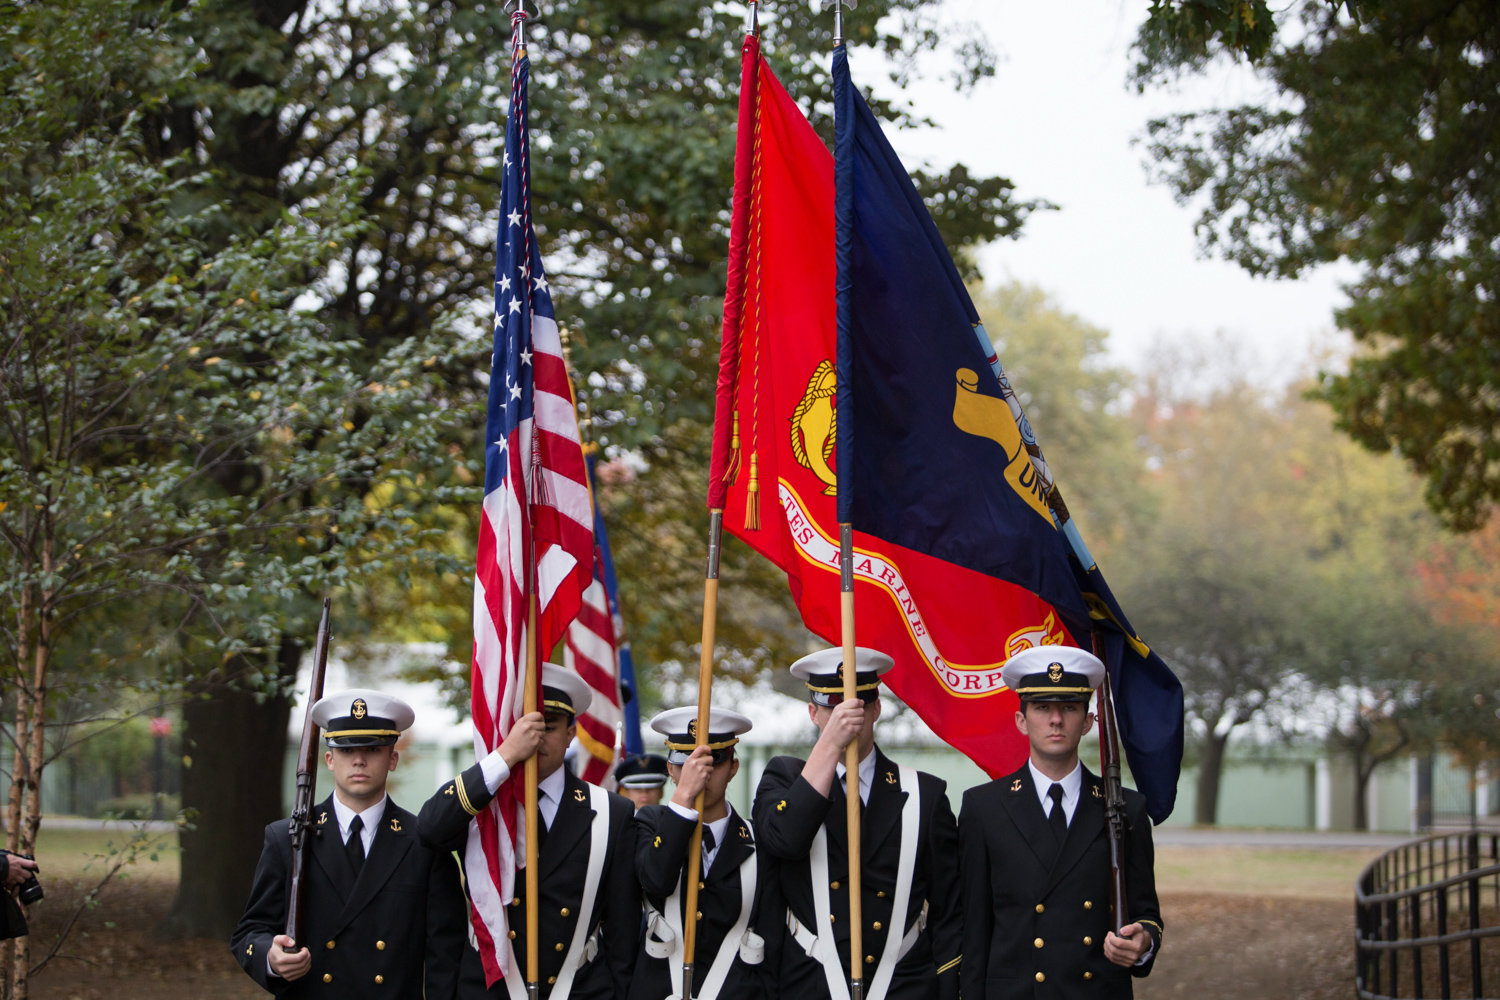 Maritime Navy ROTC members present the colors at the opening of a Veterans Day ceremony at Memorial Grove in 2017. Local veteran Herb Barret first organized the ceremony in 2007 when he sought to restore the Van Cortlandt Park location with his friend and fellow veteran, the late Donald Tannen.